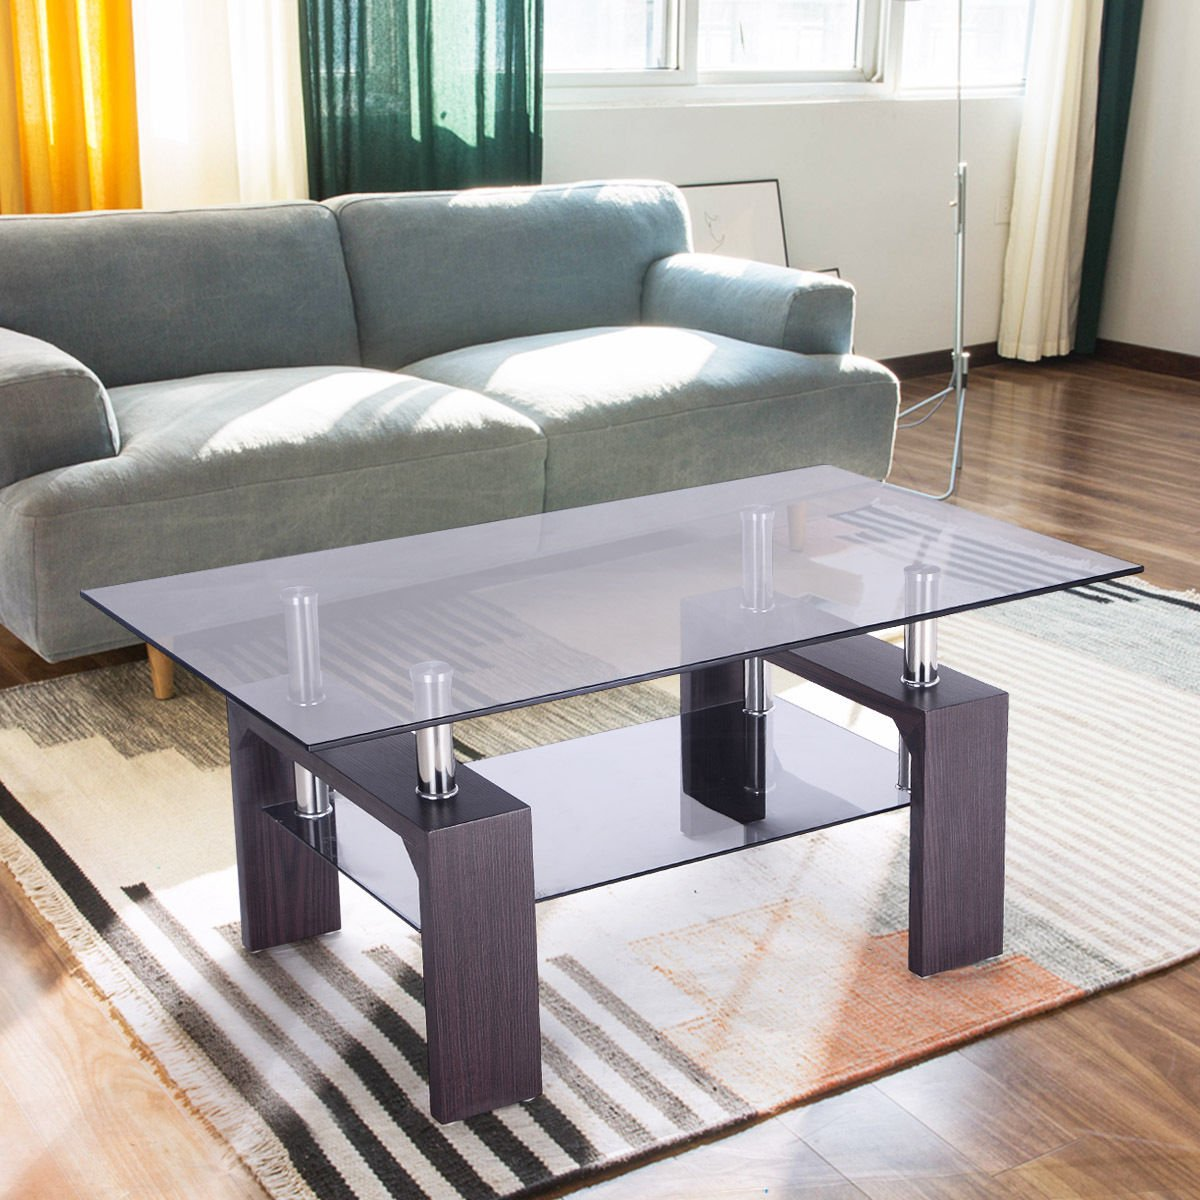 40 Incredibly Cheap Coffee Tables You Can Buy for Under $100 in 2019